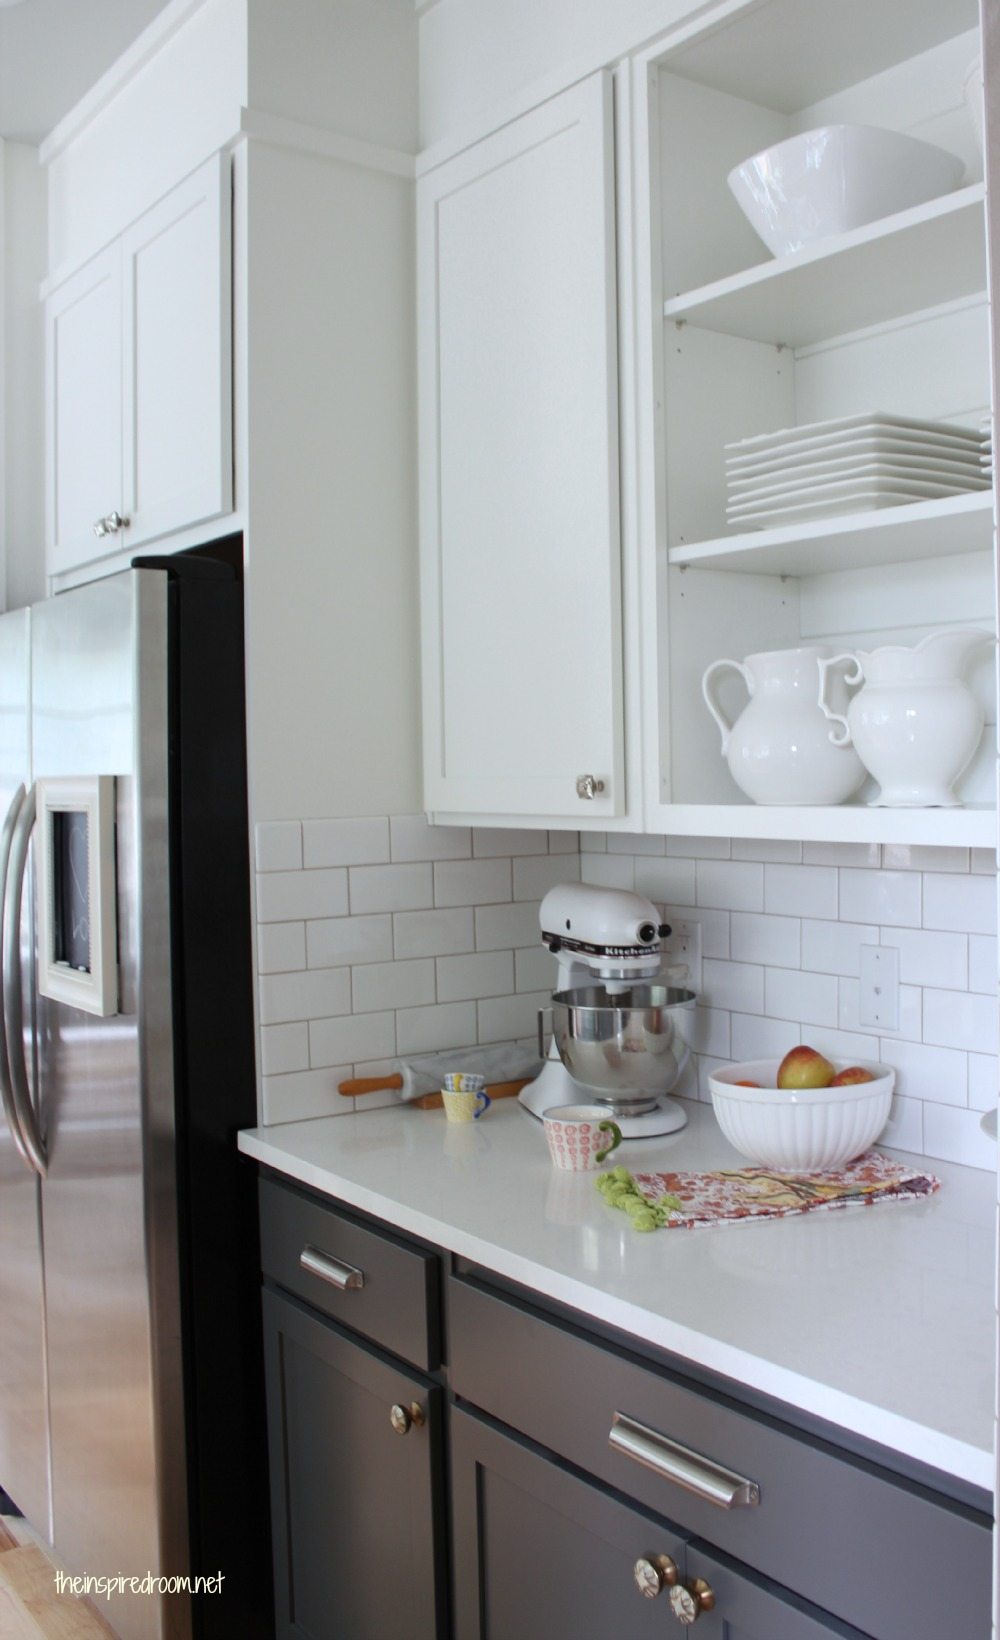 Bar pulls for kitchen cabinets - Bar Pulls For Kitchen Cabinets Photo 3